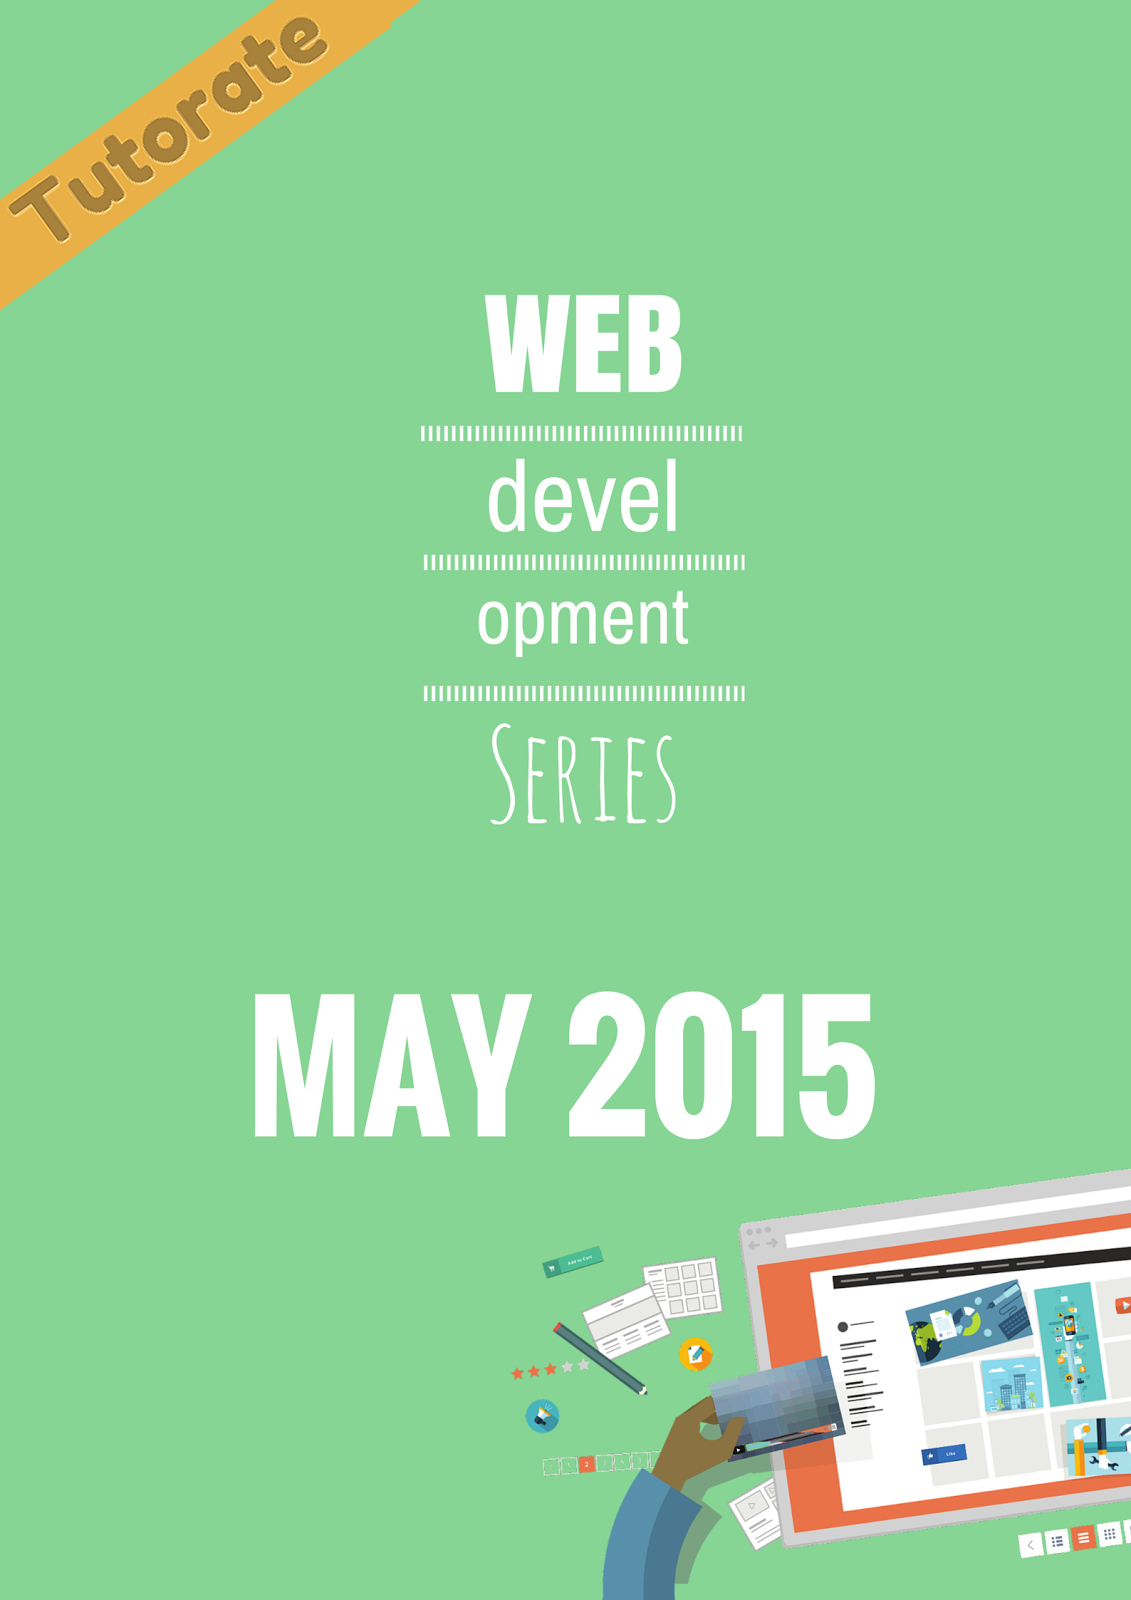 Tutorate Web Development Series